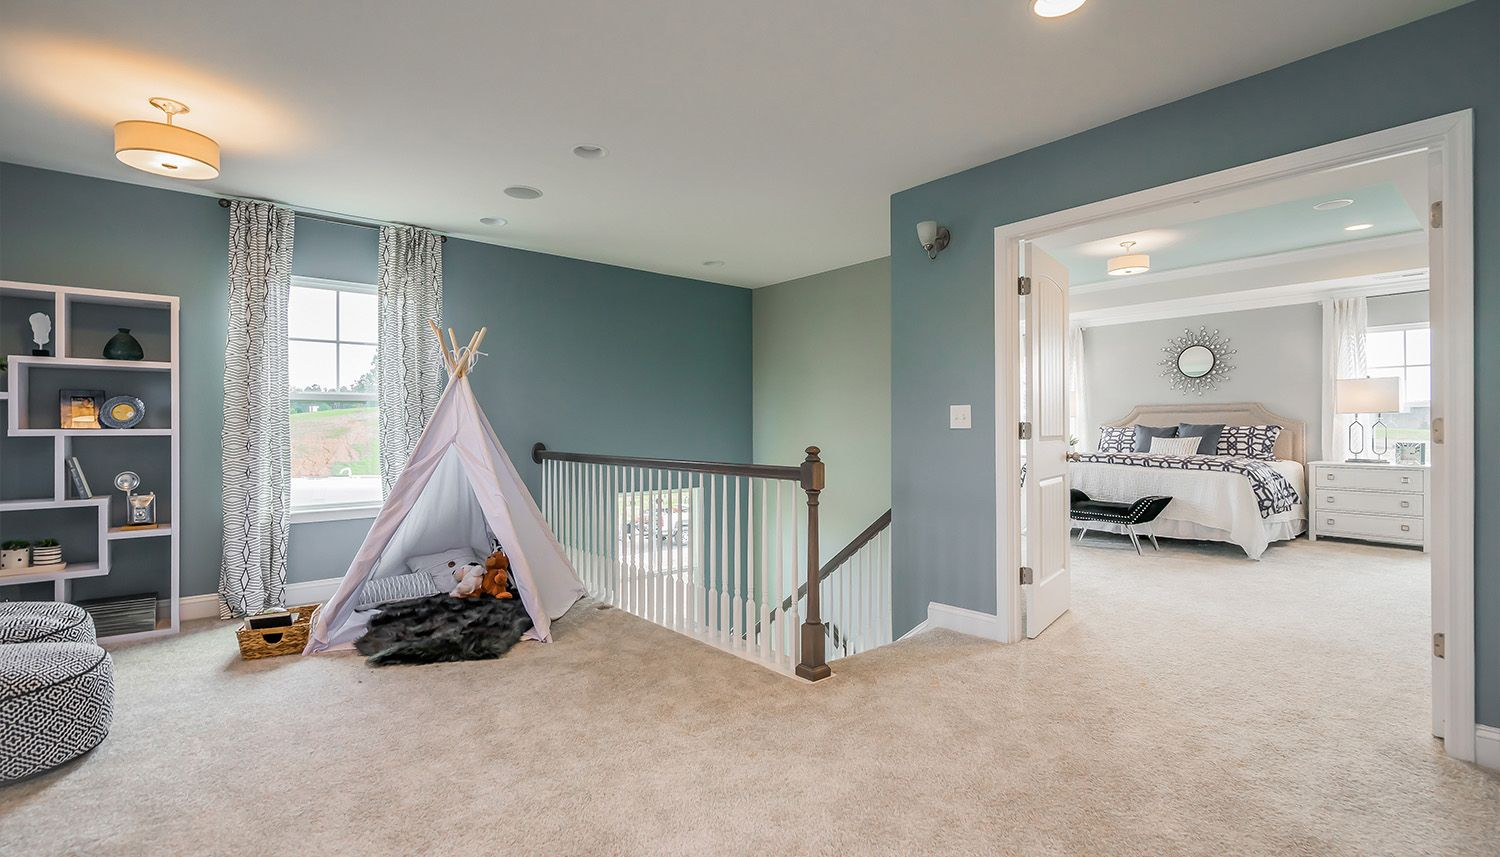 Bedroom featured in the Malbec By Dan Ryan Builders in Raleigh-Durham-Chapel Hill, NC